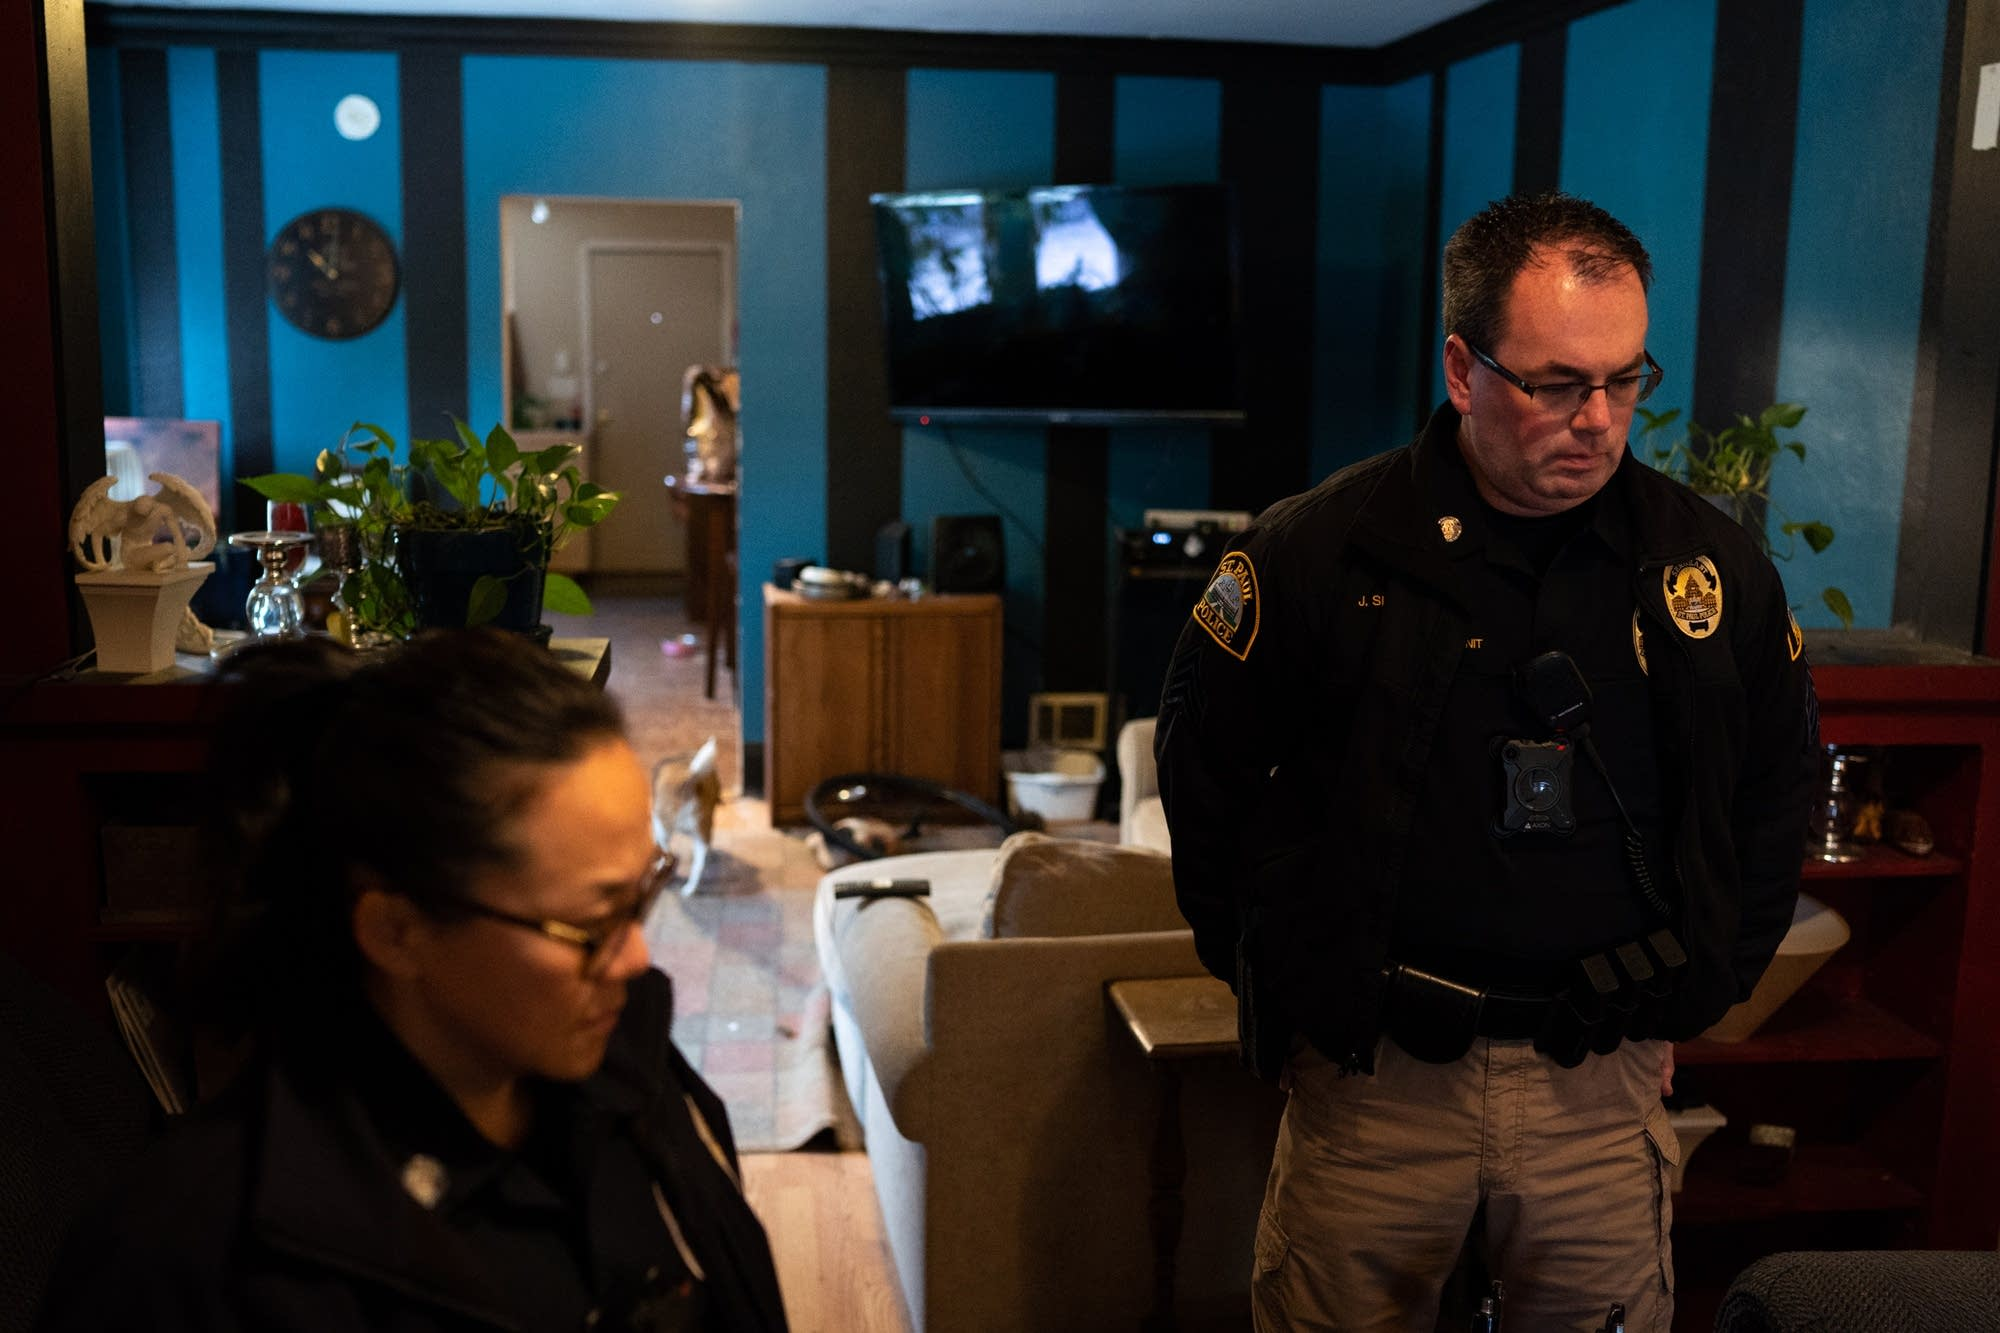 St. Paul Police Sgt. Jamie Sipes, right, and officer Lori Goulet respond.